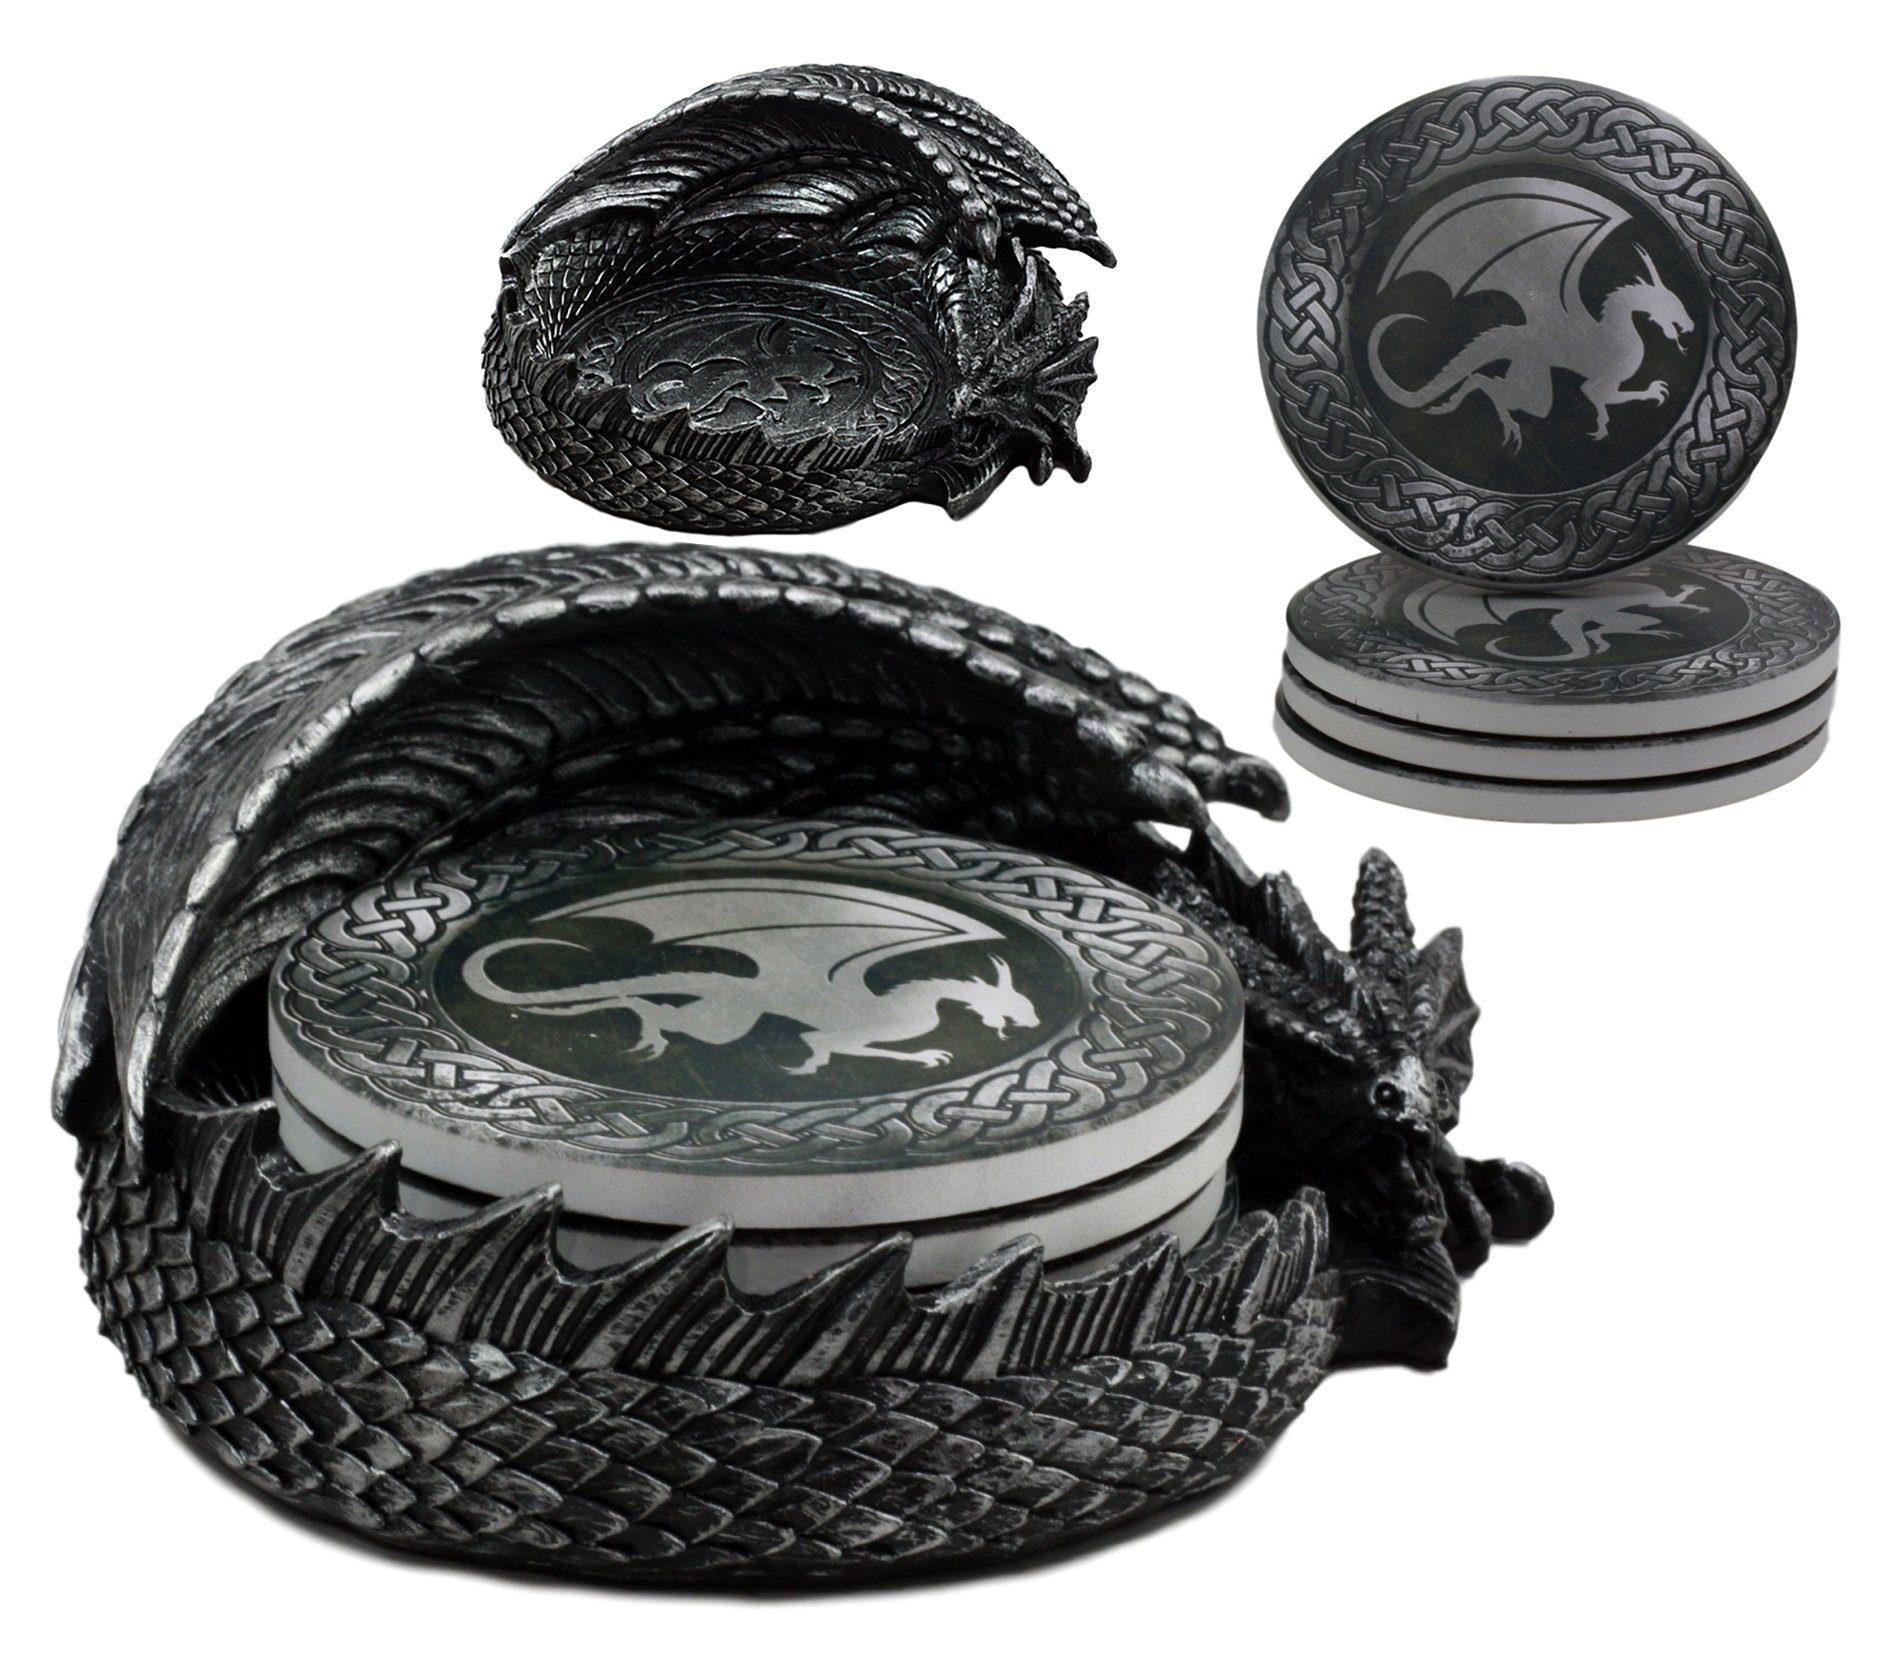 Ebros Hour of The Dragon Coaster Set 6.5'' Long Figurine Holder and Four Round Dragon Silhouette Detailed Coasters by Ebros Gift